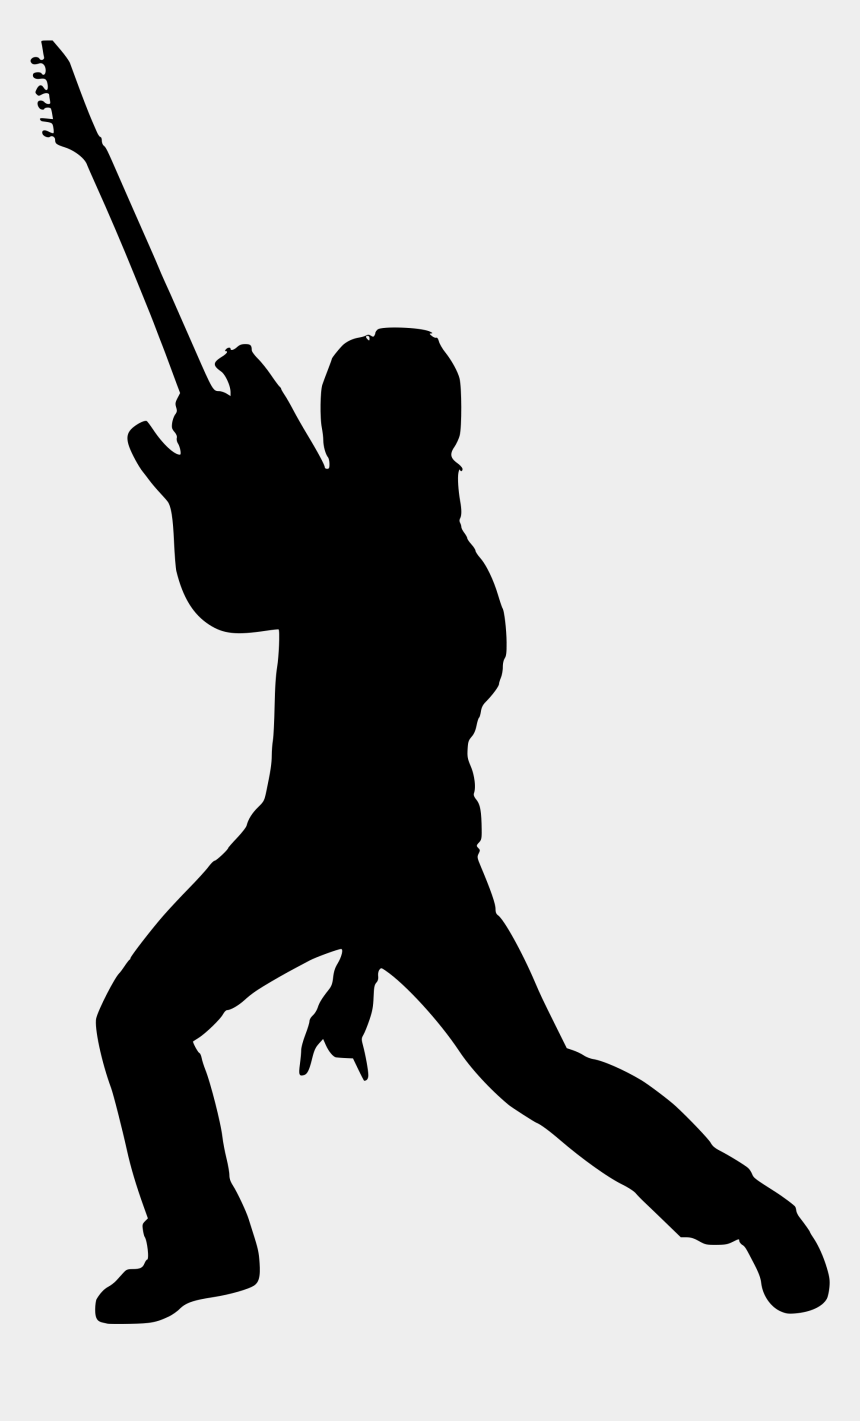 star silhouette clipart, Cartoons - Rock Star Silhouette Png